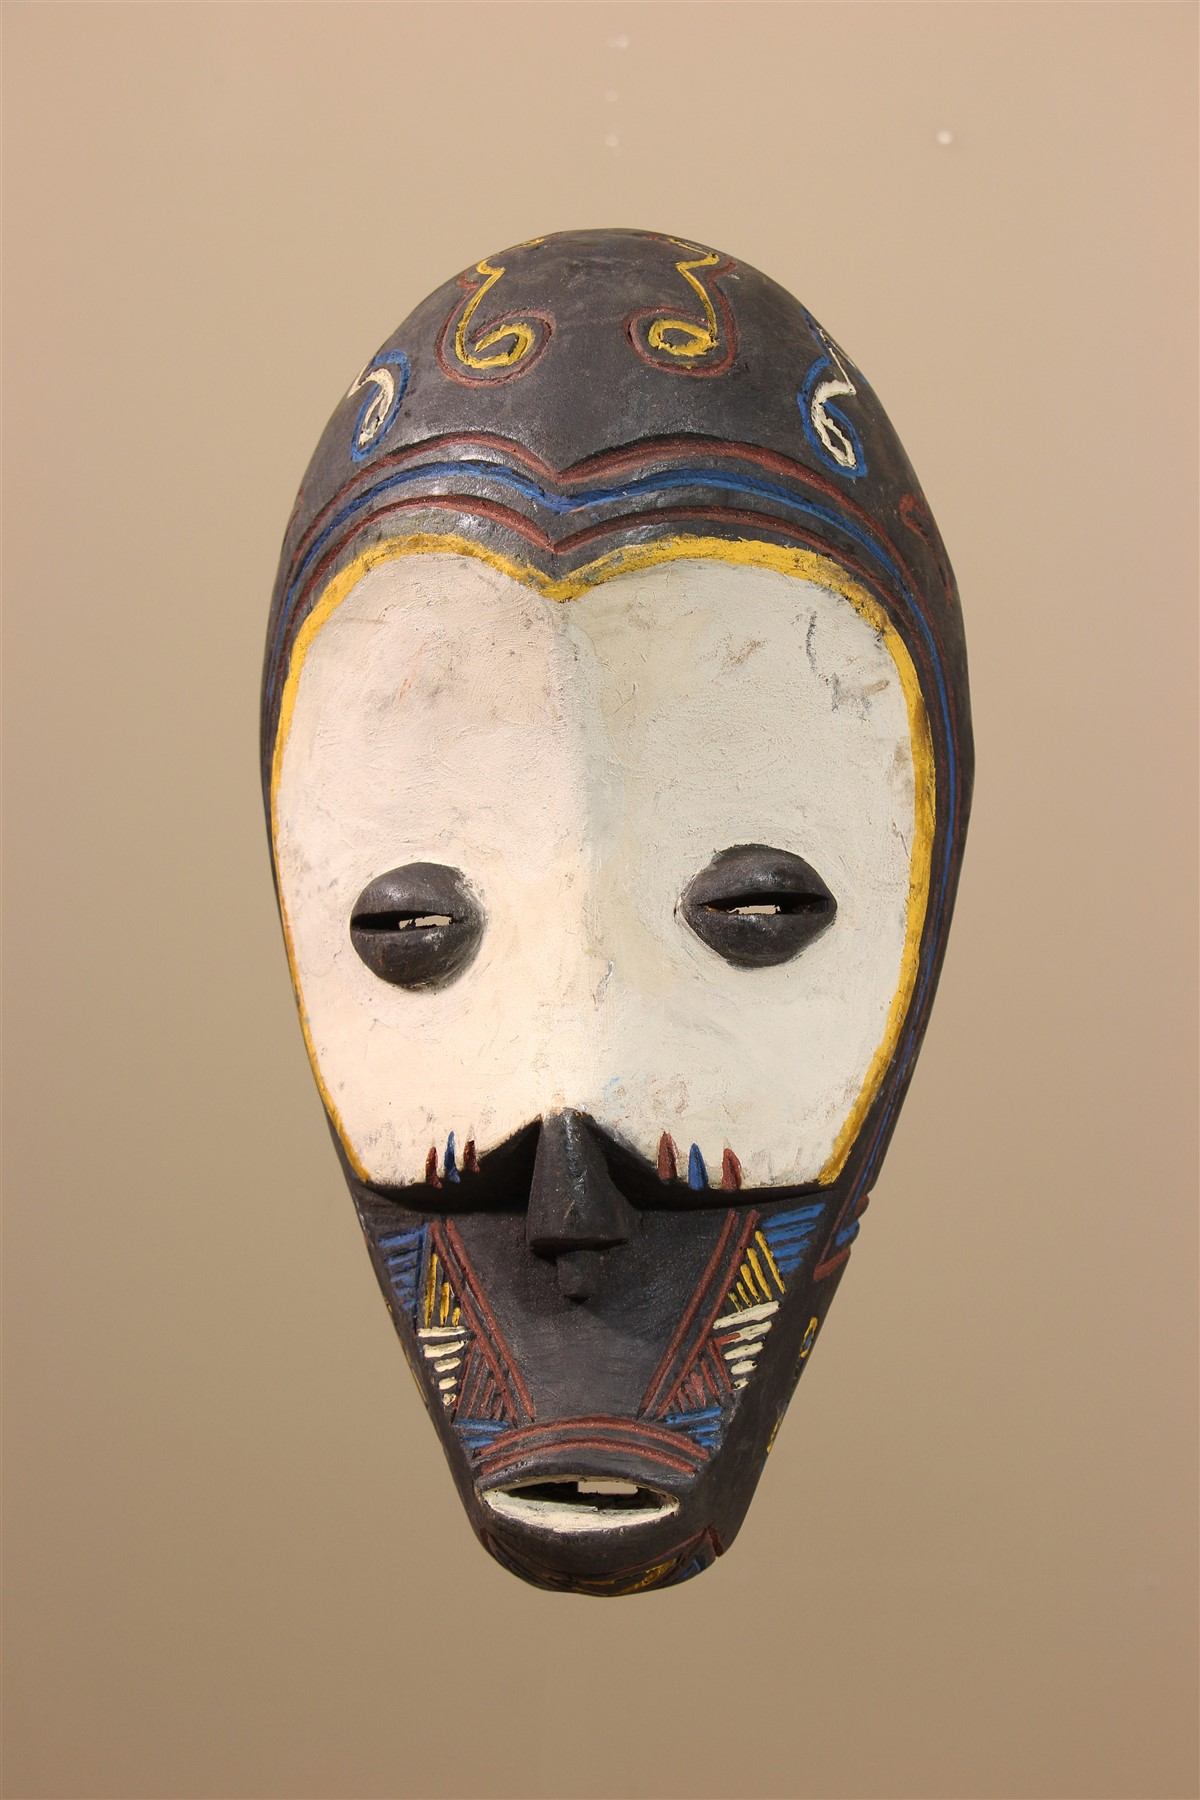 Masque africain Ngombe - Déco africaine - Art africain traditionnel